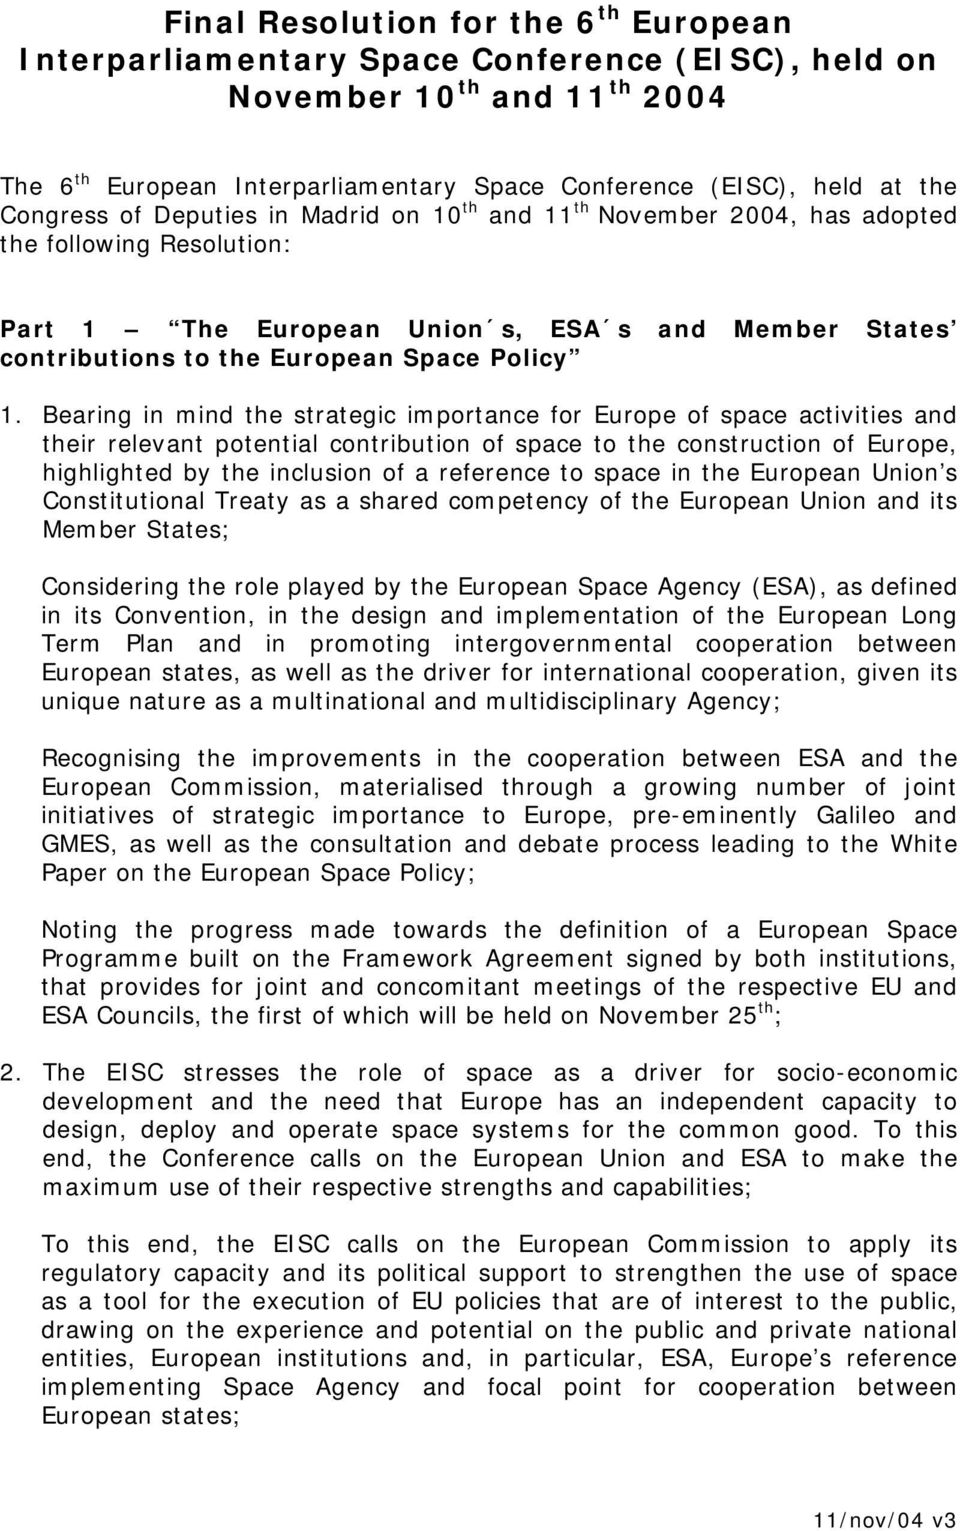 1. Bearing in mind the strategic importance for Europe of space activities and their relevant potential contribution of space to the construction of Europe, highlighted by the inclusion of a